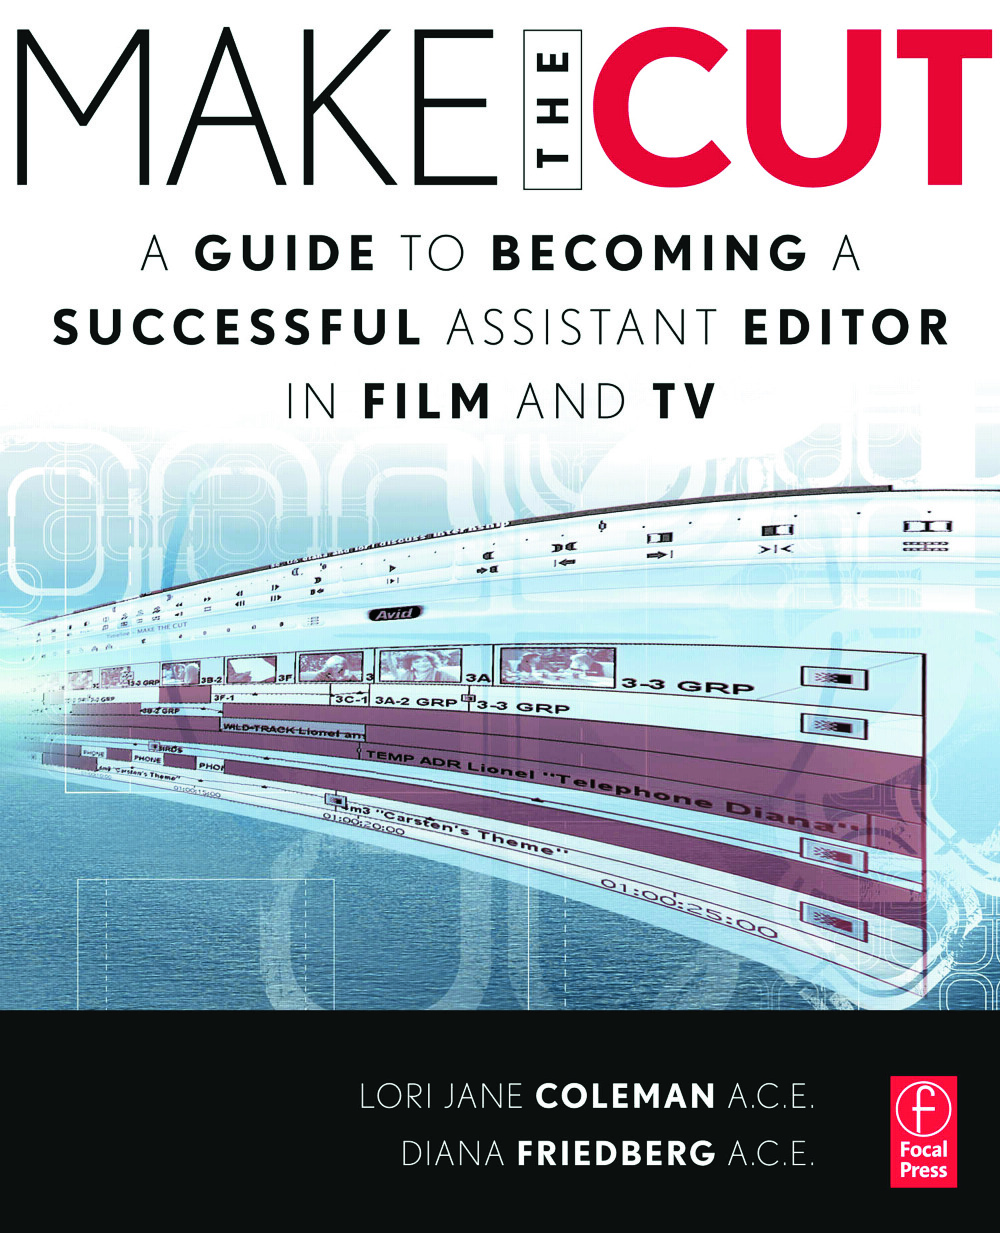 Make the Cut: A Guide to Becoming a Successful Assistant Editor in Film and TV book cover